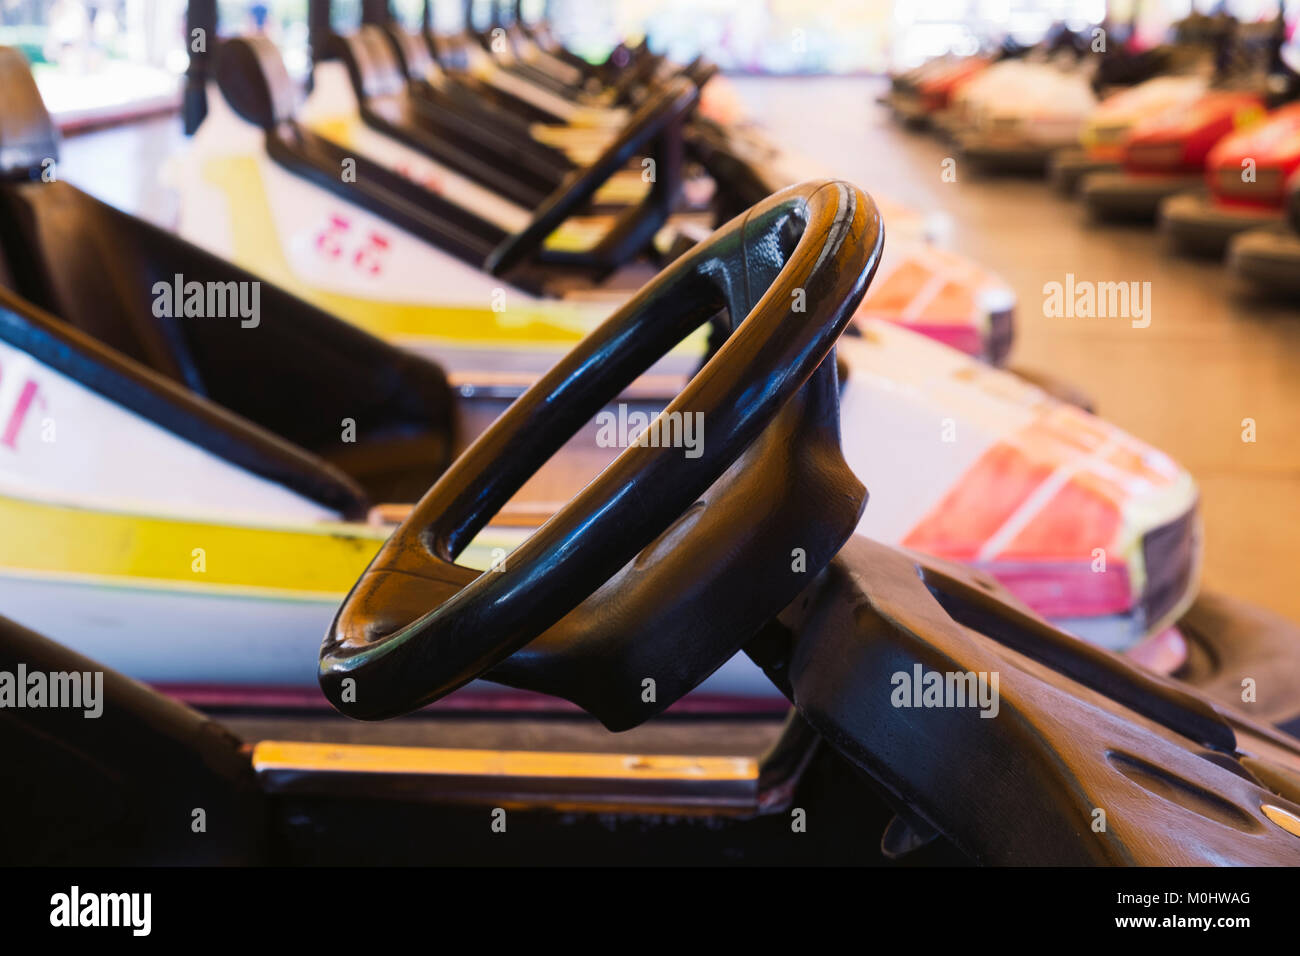 closeup of some bumper cars parked in the track, in an amusement park - Stock Image